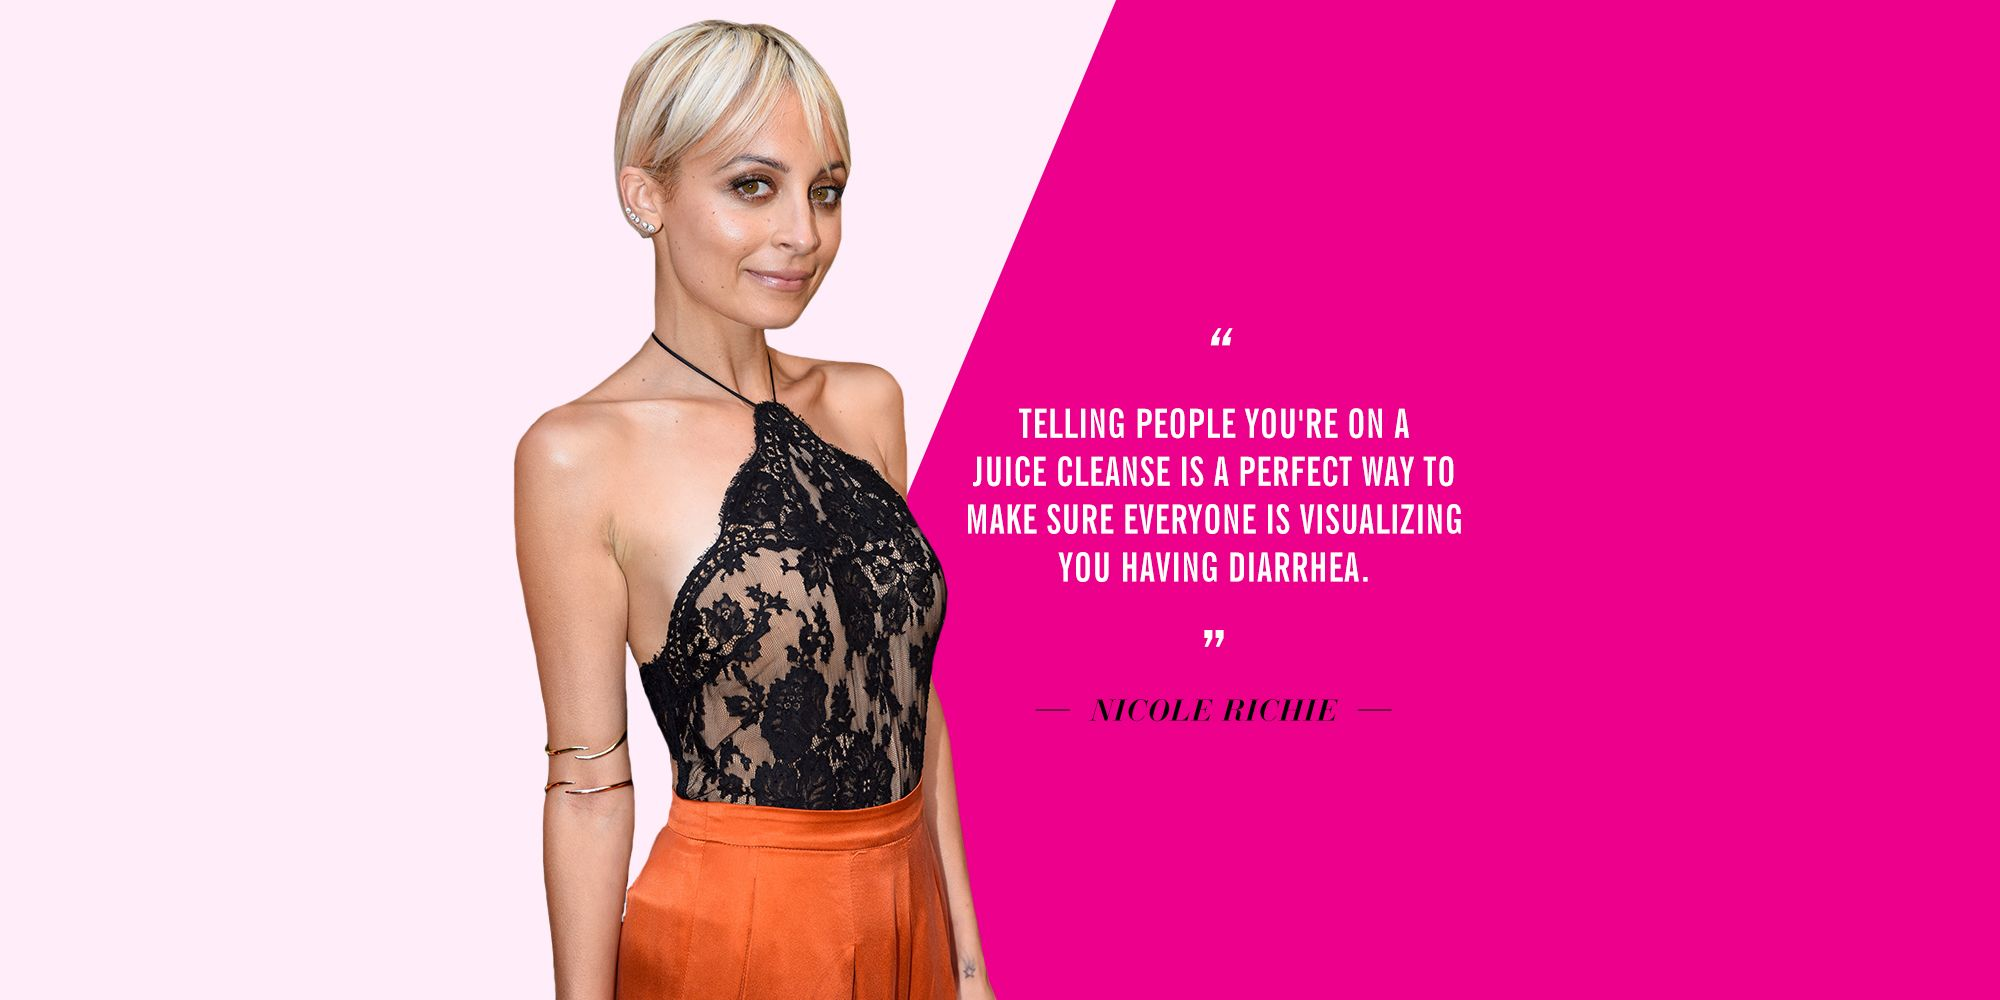 Celebrities talk about juice cleanses malvernweather Gallery